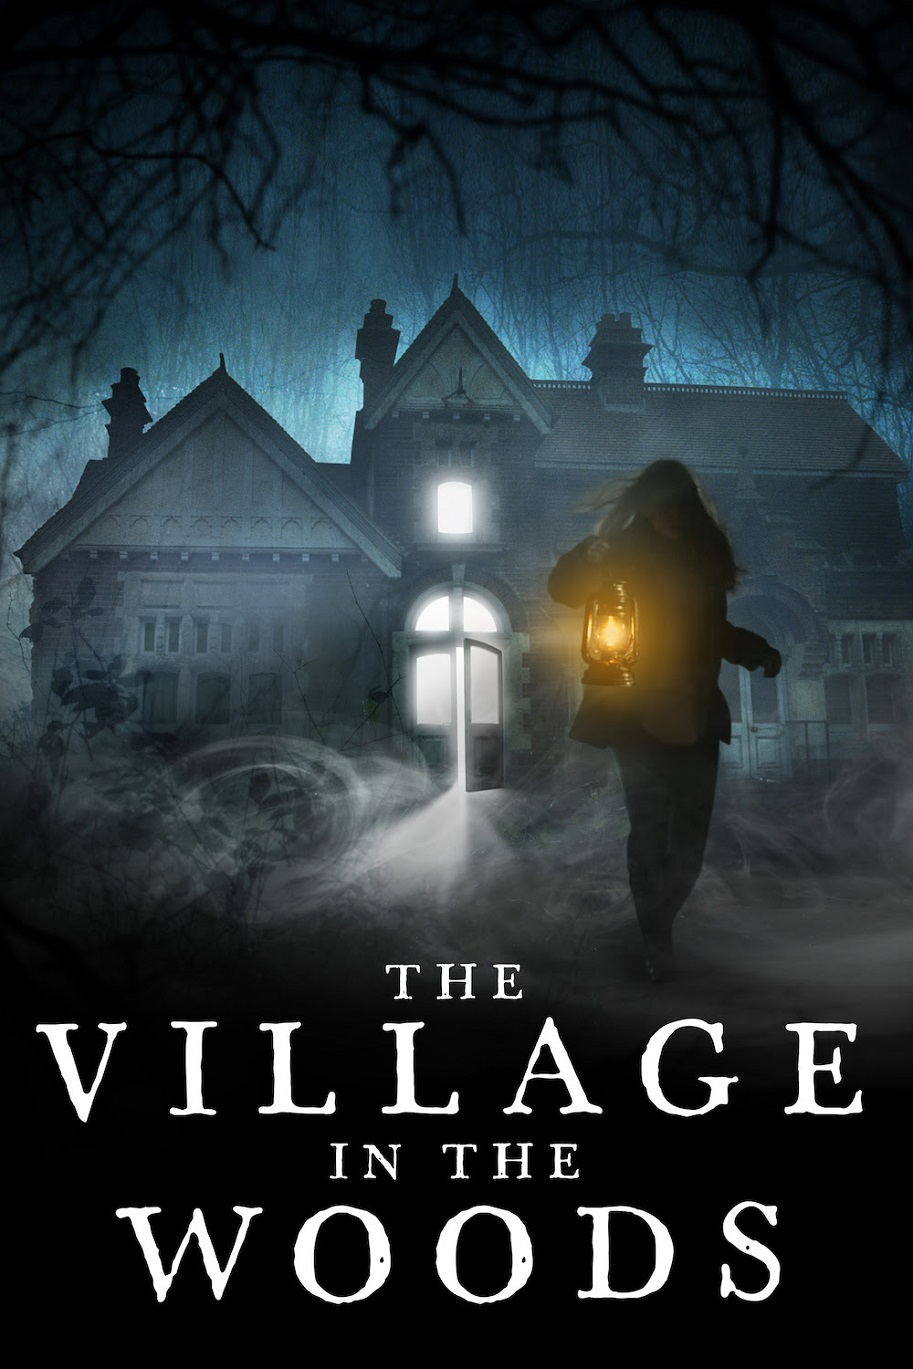 The Village in the Woods Trailer & Poster